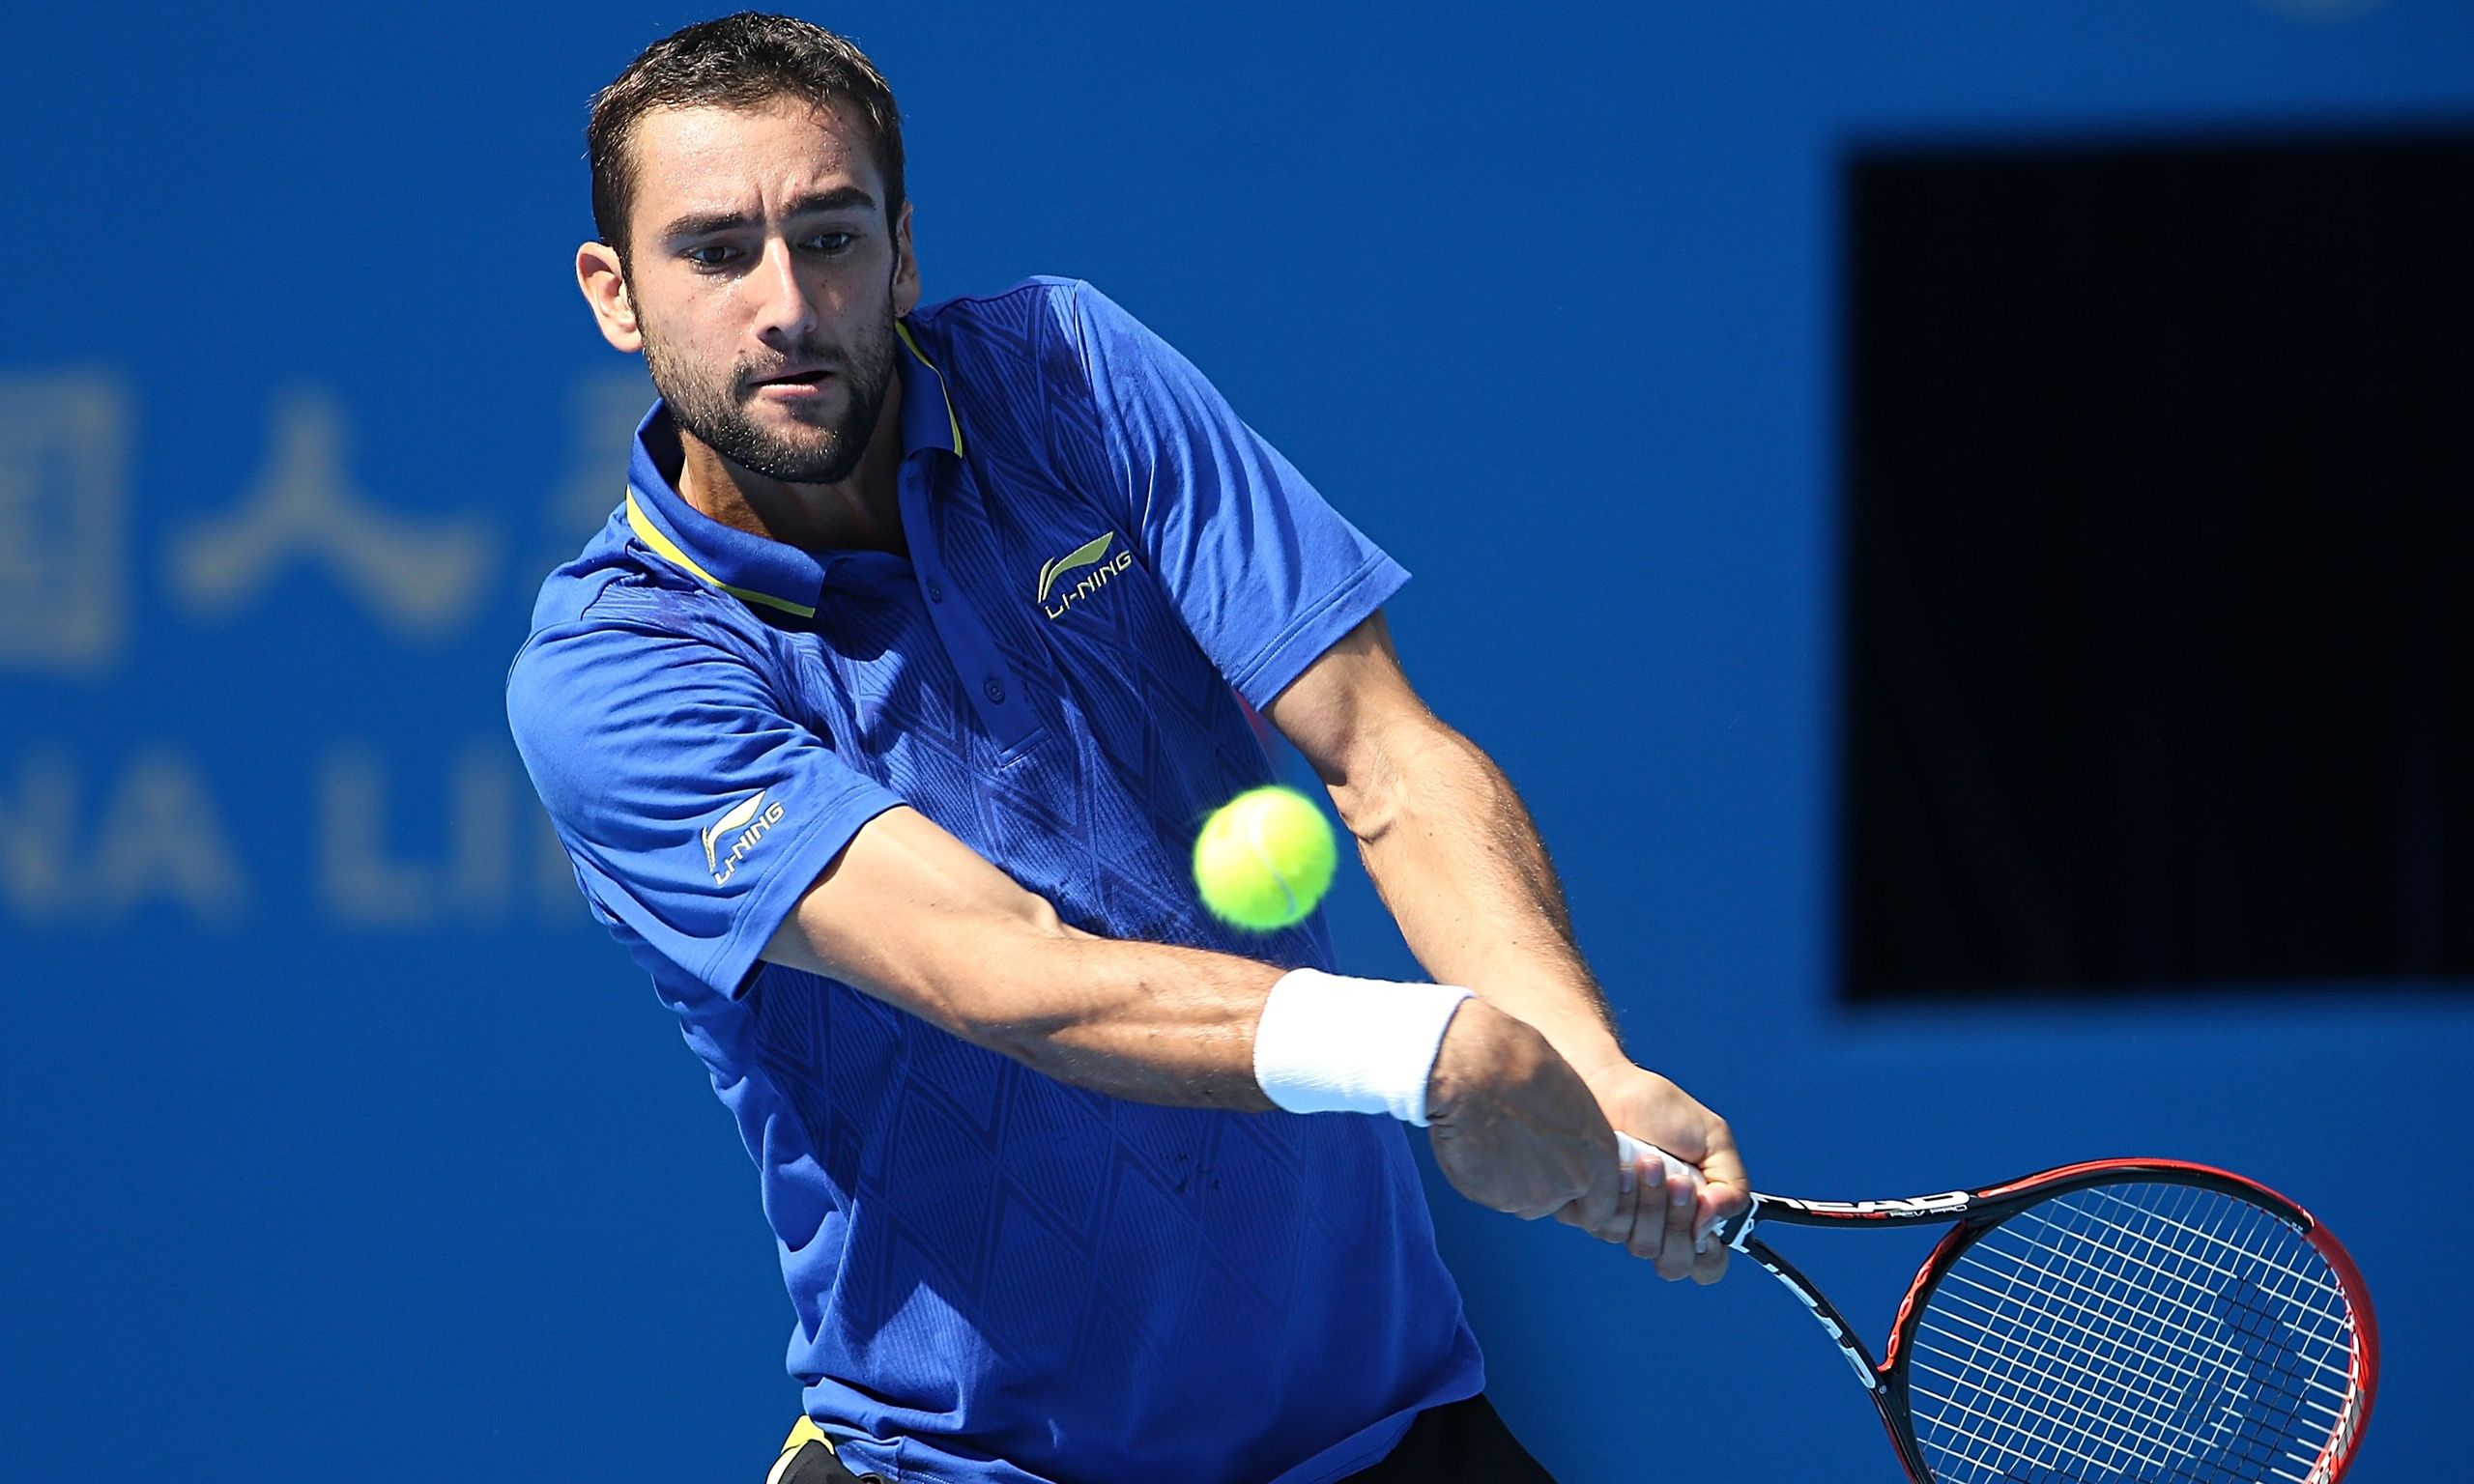 marin cilic lovely short hd free mobile background download images